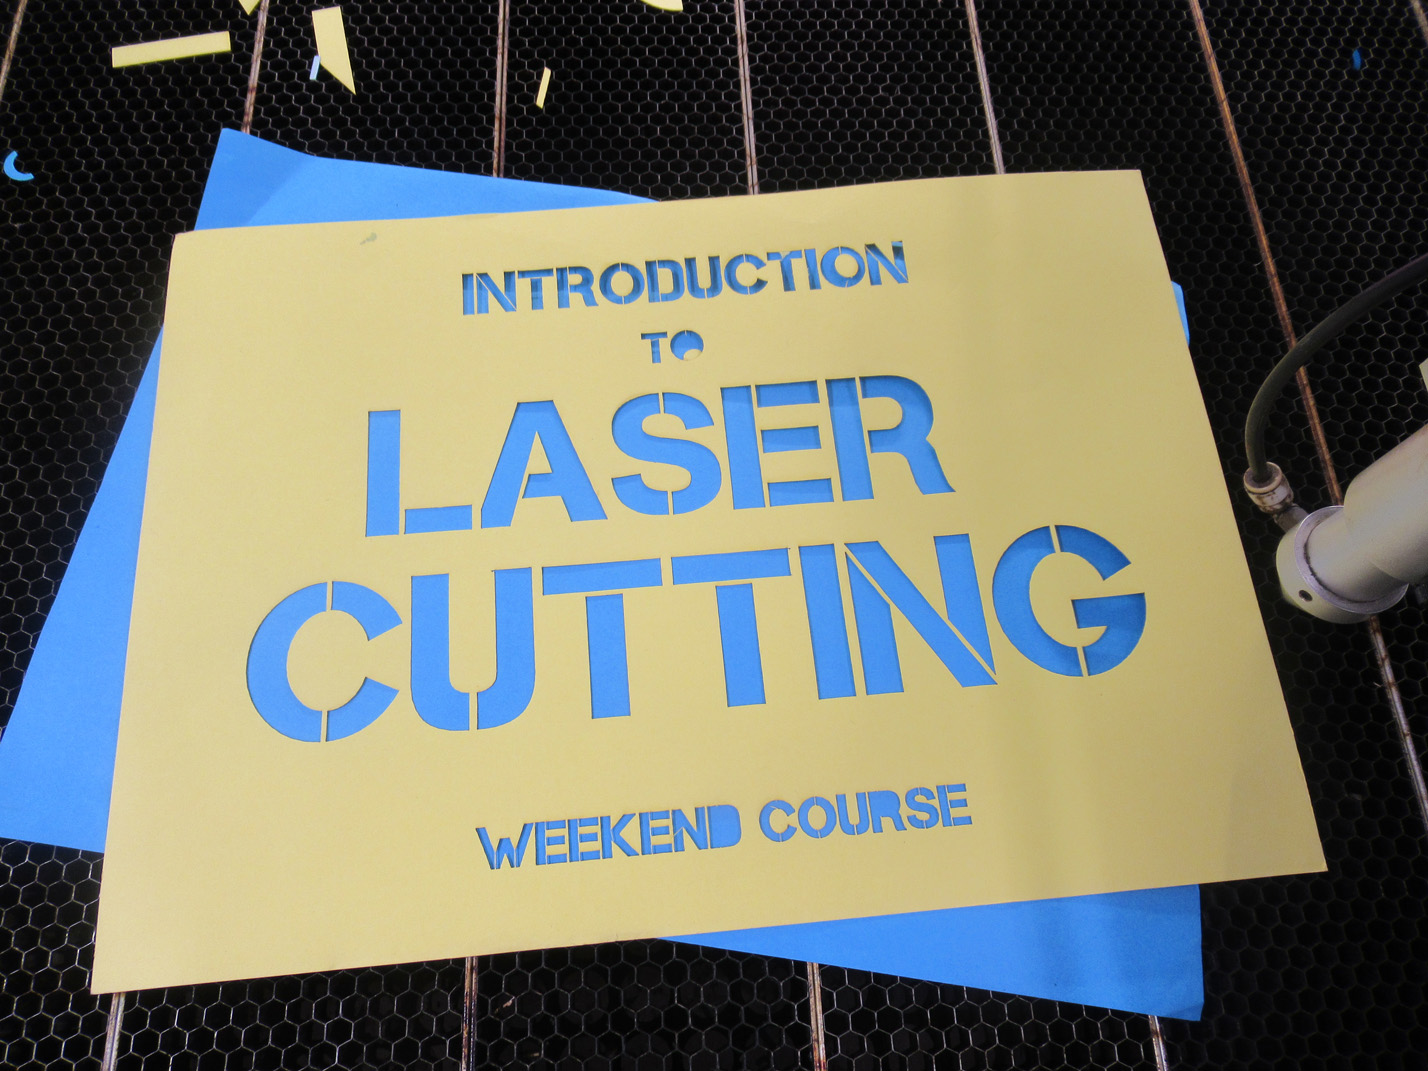 Introduction to Laser Cutting 29th & 30 Nov